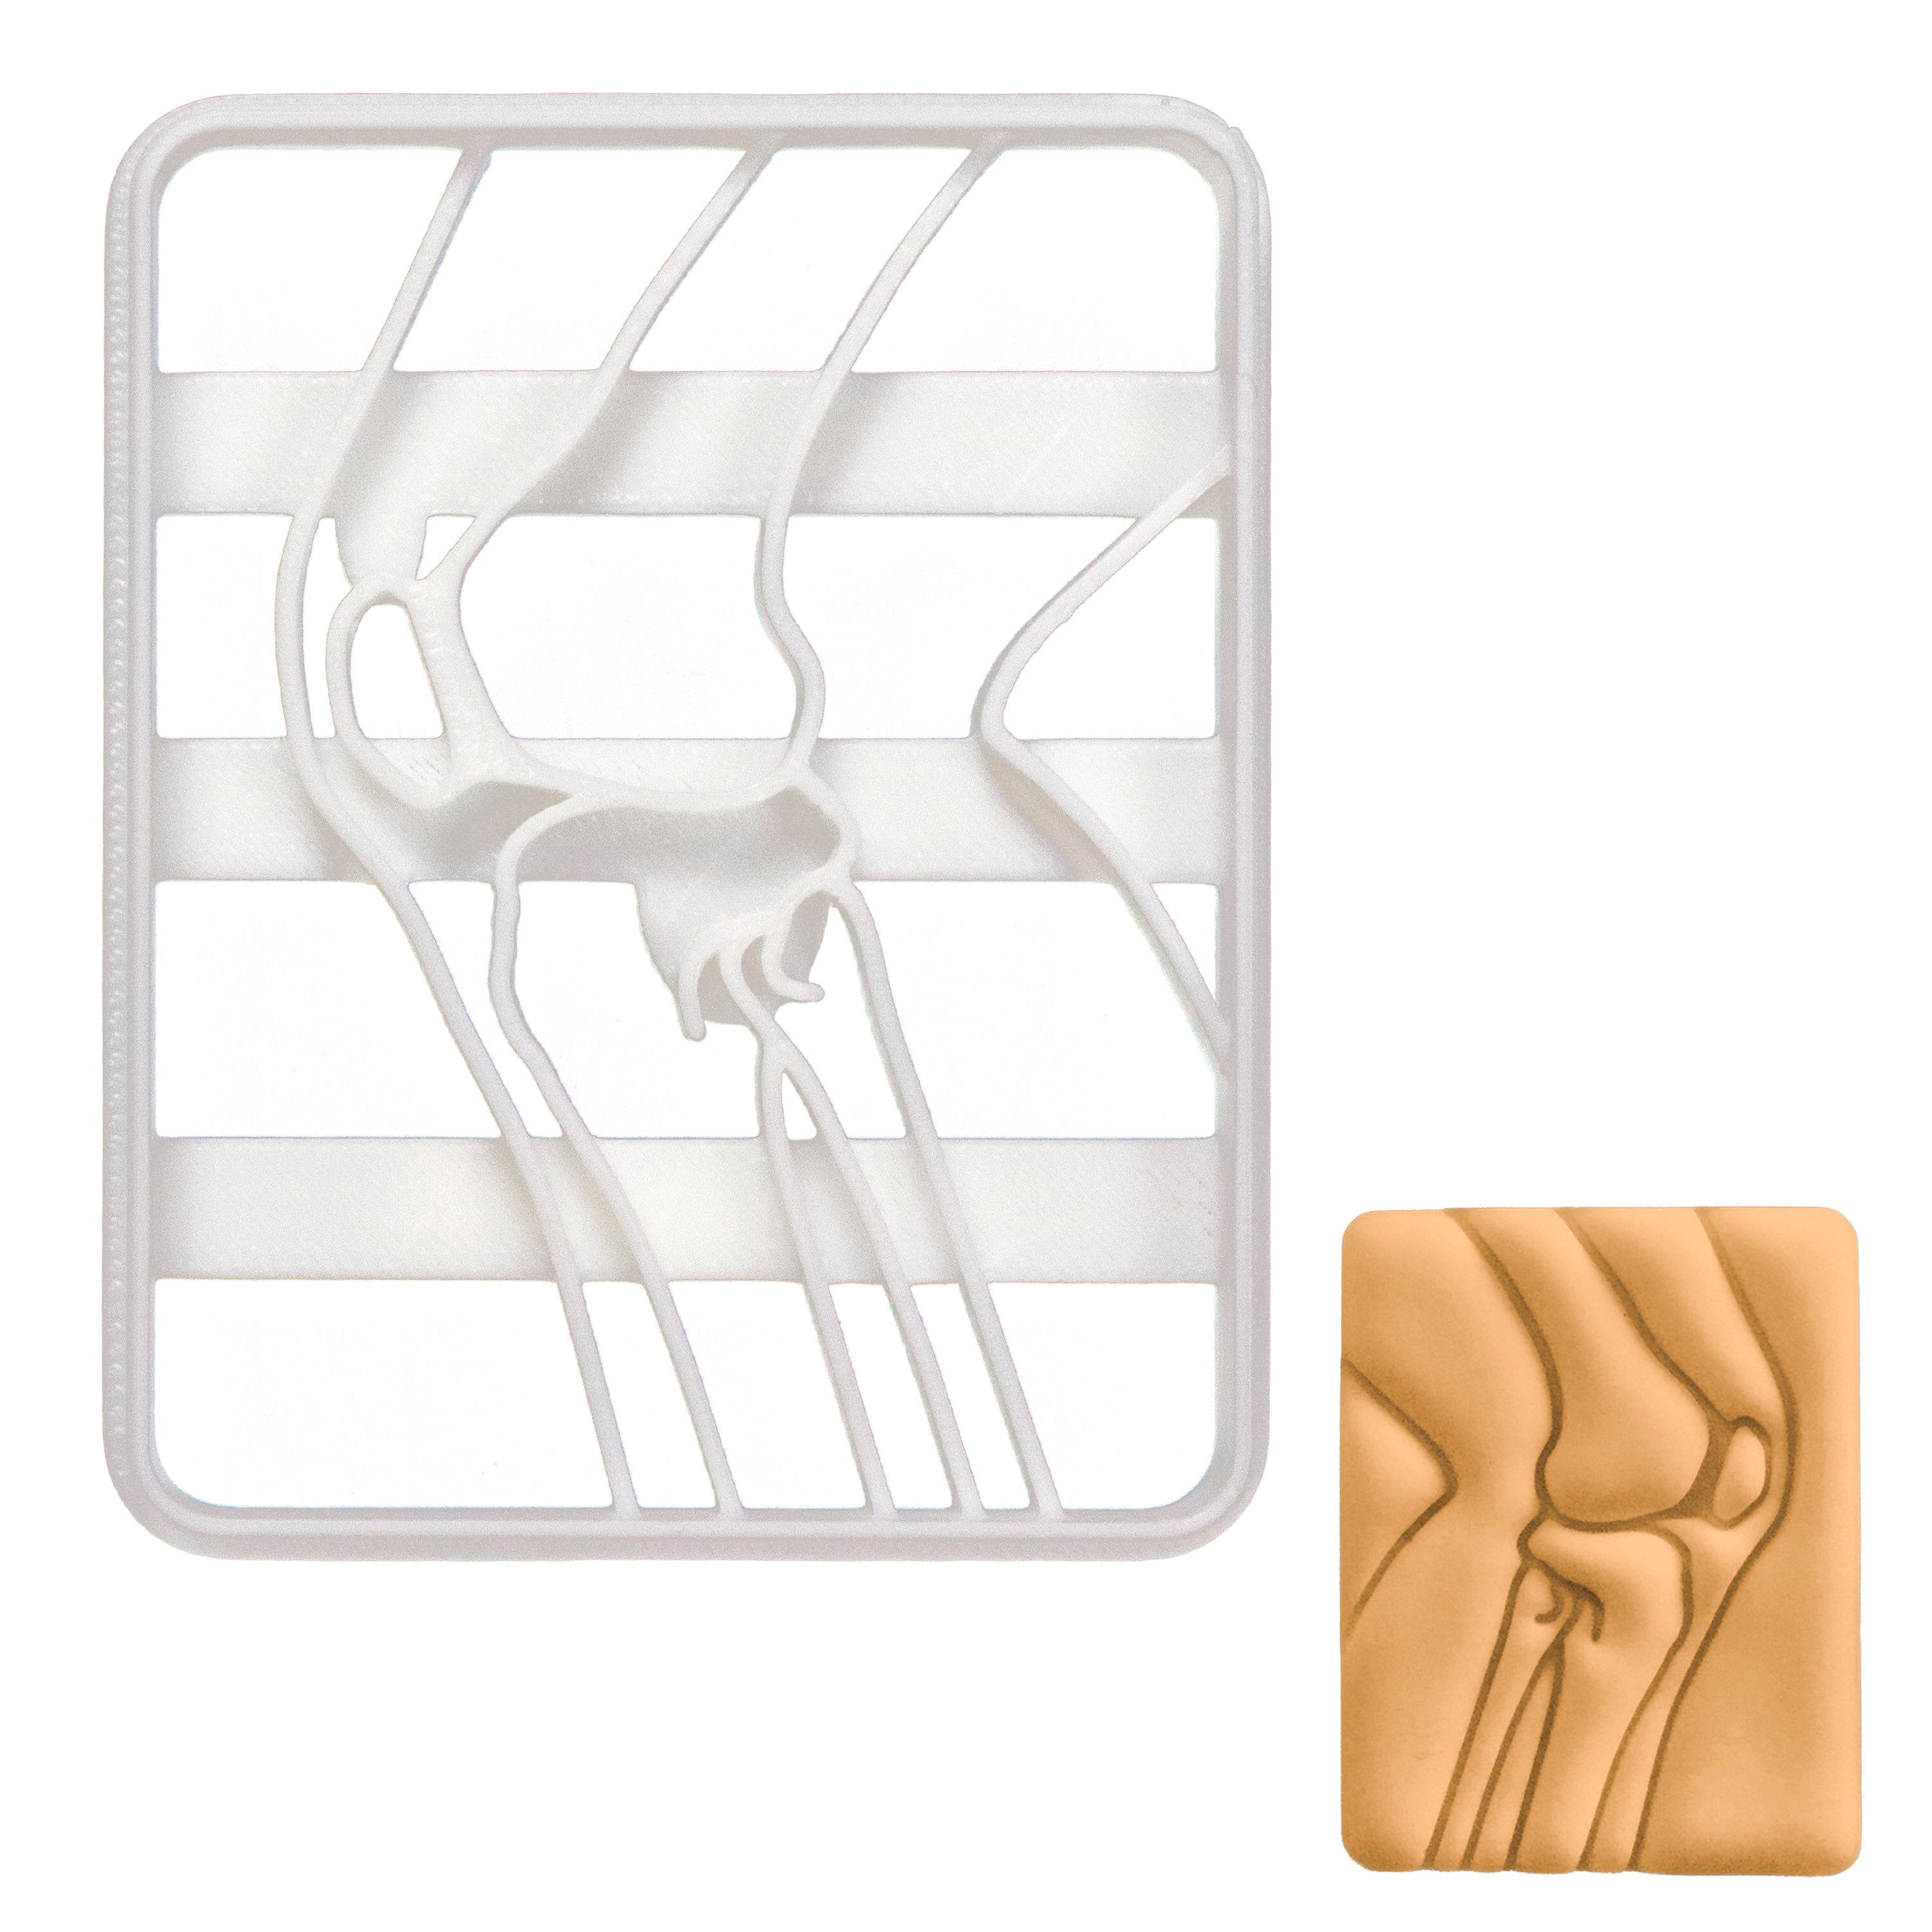 x-ray knee bone cookie cutter